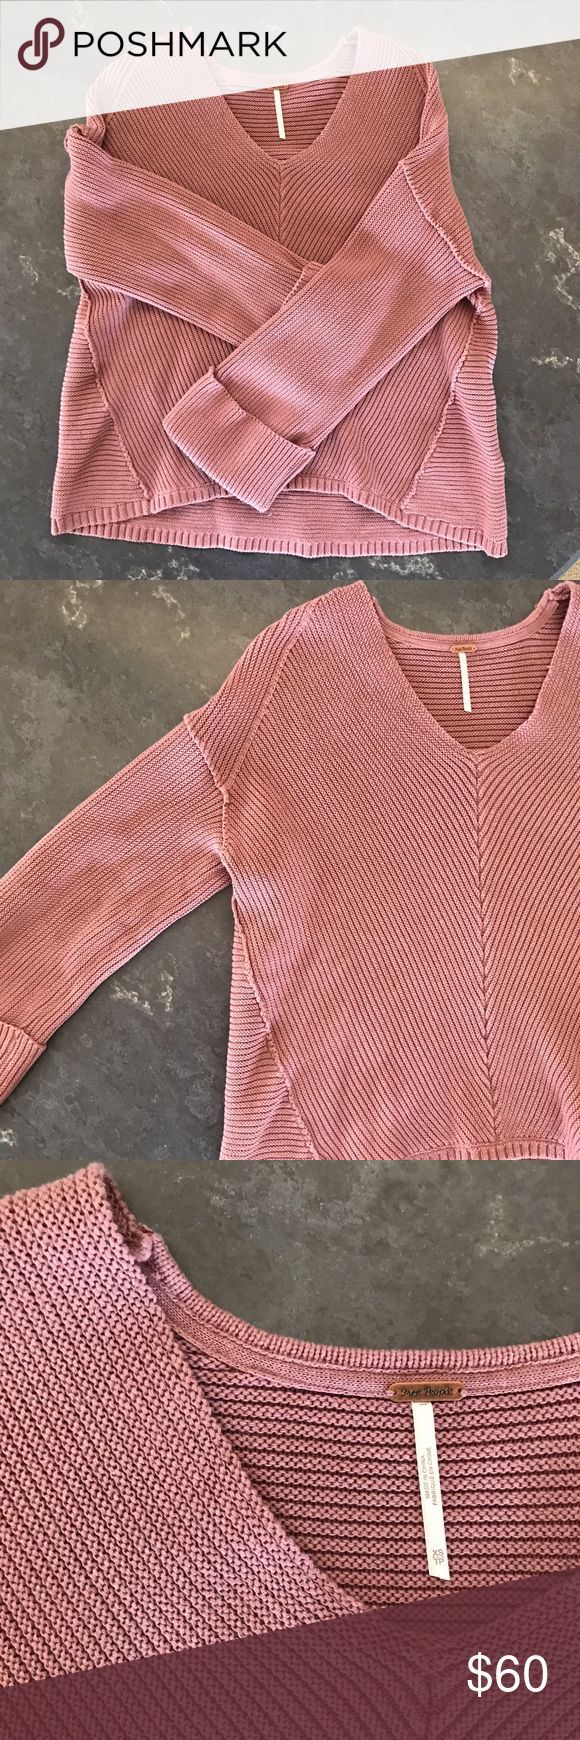 Free People La Brea v neck sweater In an oversized silhouette, this heavy knit sweater features a V-neckline with cuffed wide sleeves. This easy style is the perfect pullover. Only worn once, still in perfect condition! Free People Sweaters V-Necks